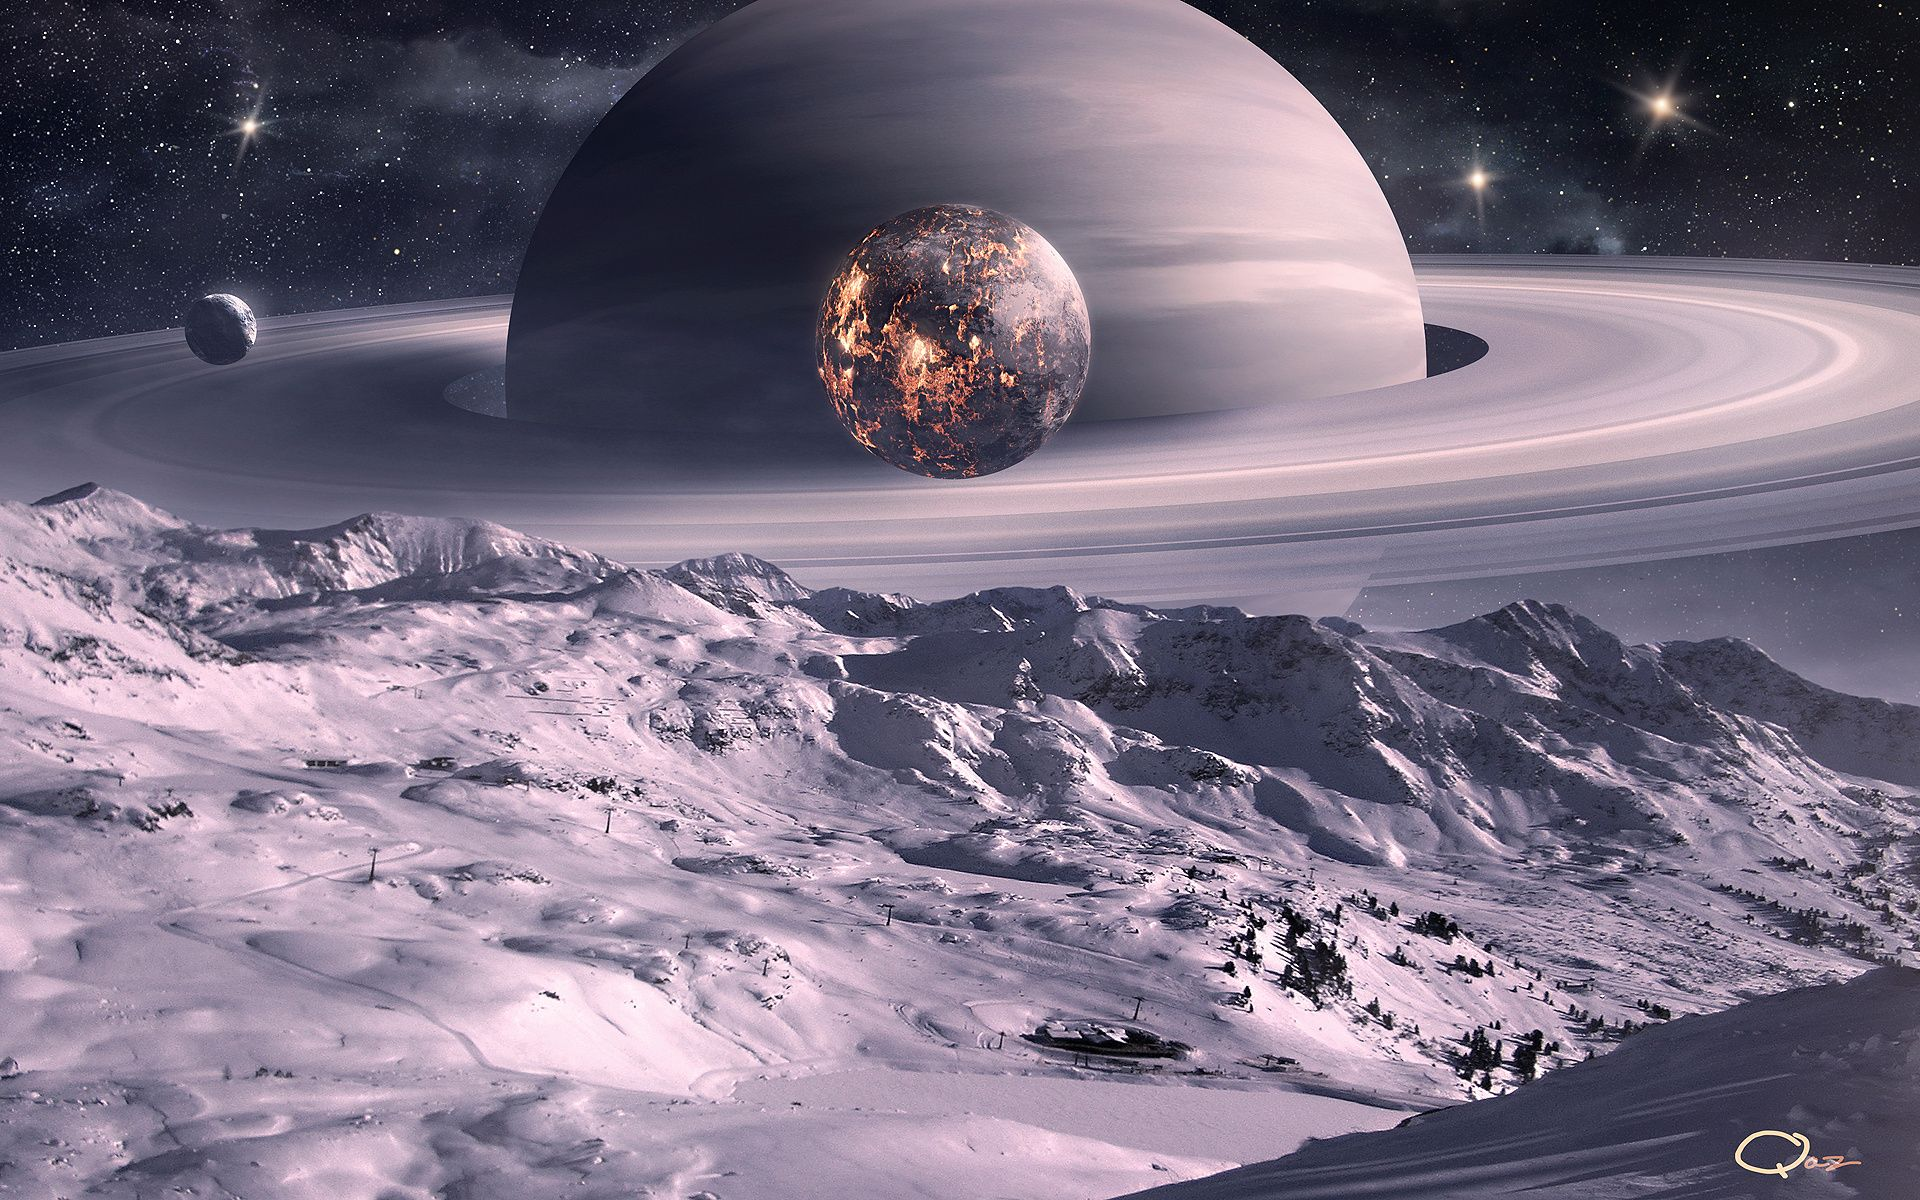 http://all-images.net/wallpaper-science-fiction-hd-16/